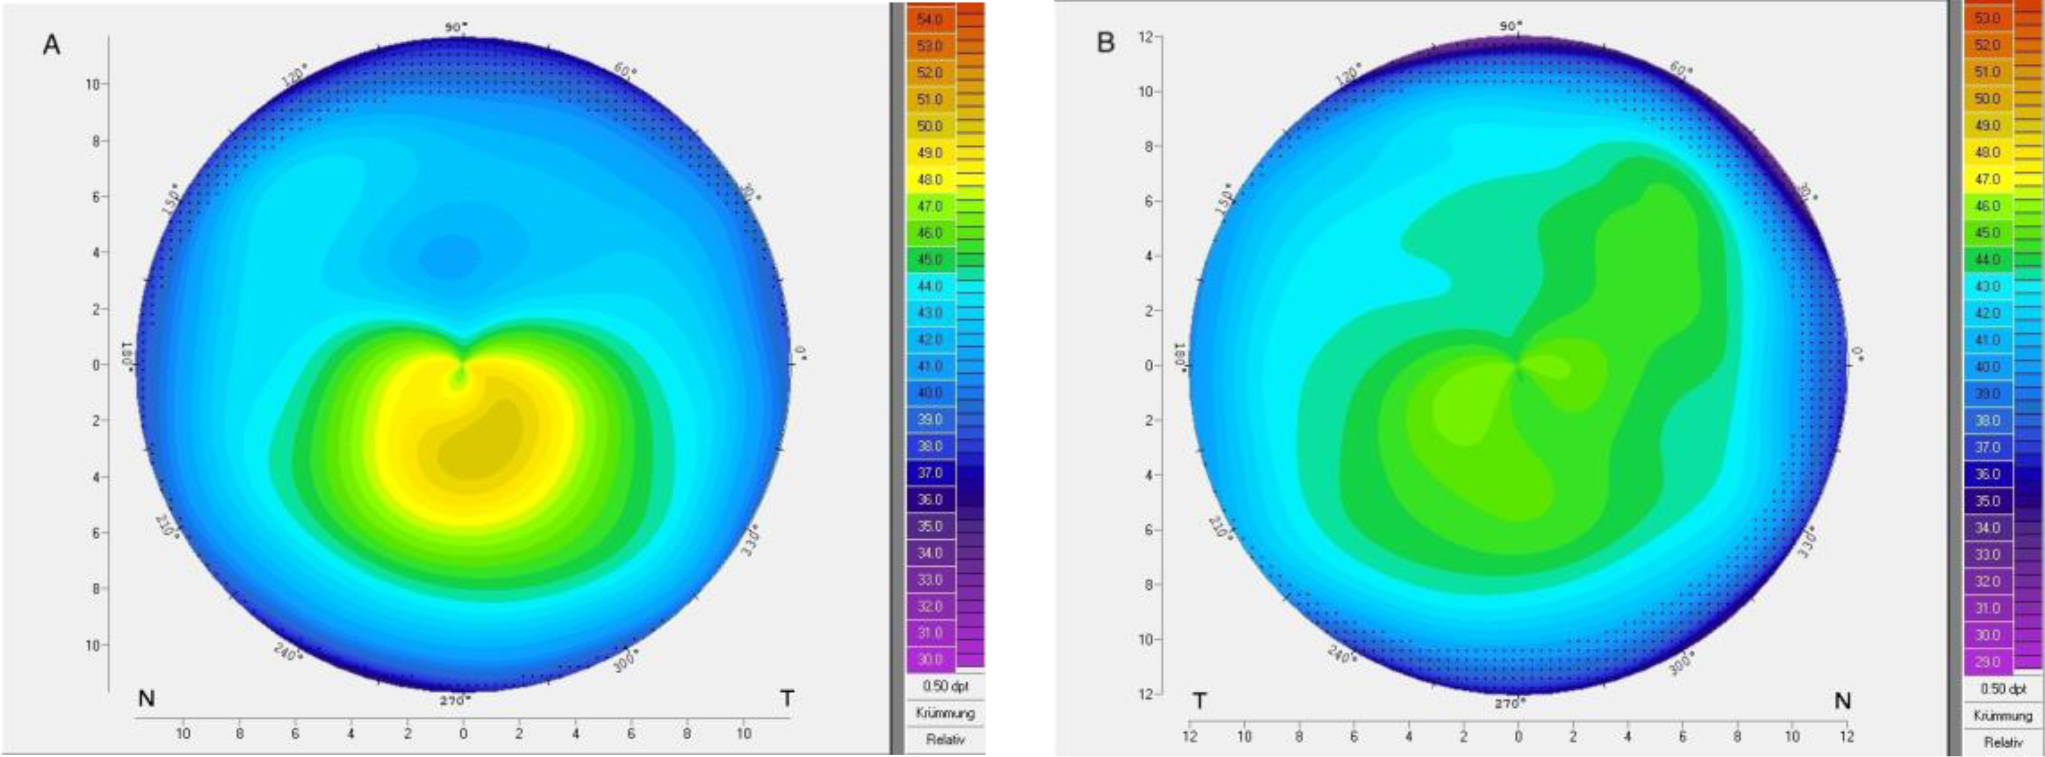 Corneal topography of patient 6 with very asymmetric keratoconus showing (A) ectasia and (B) regular topography in the fellow eye.